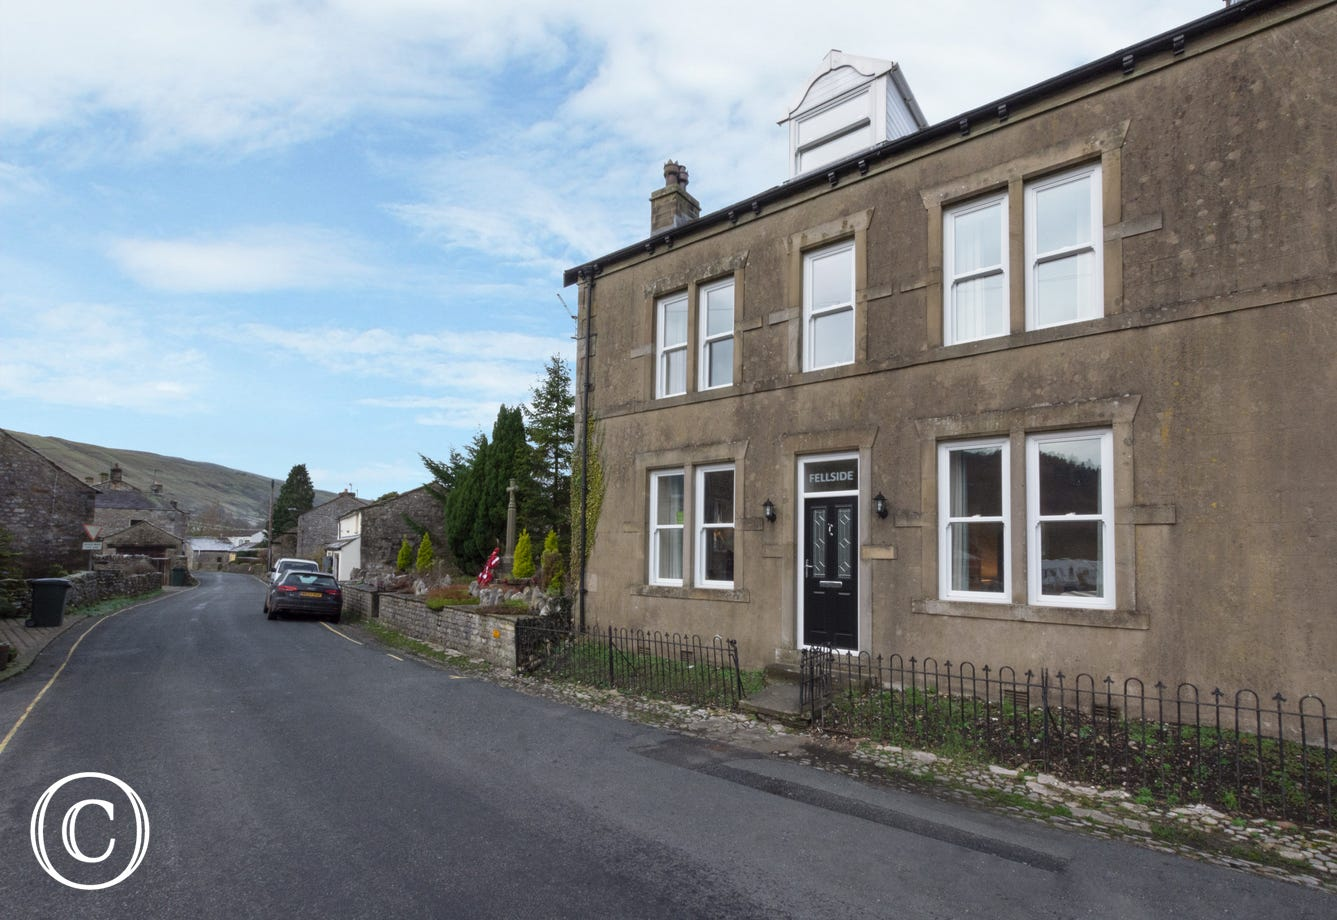 Double fronted property in Kettlewell, Fellside sleeps up to 8 in 4 bedrooms